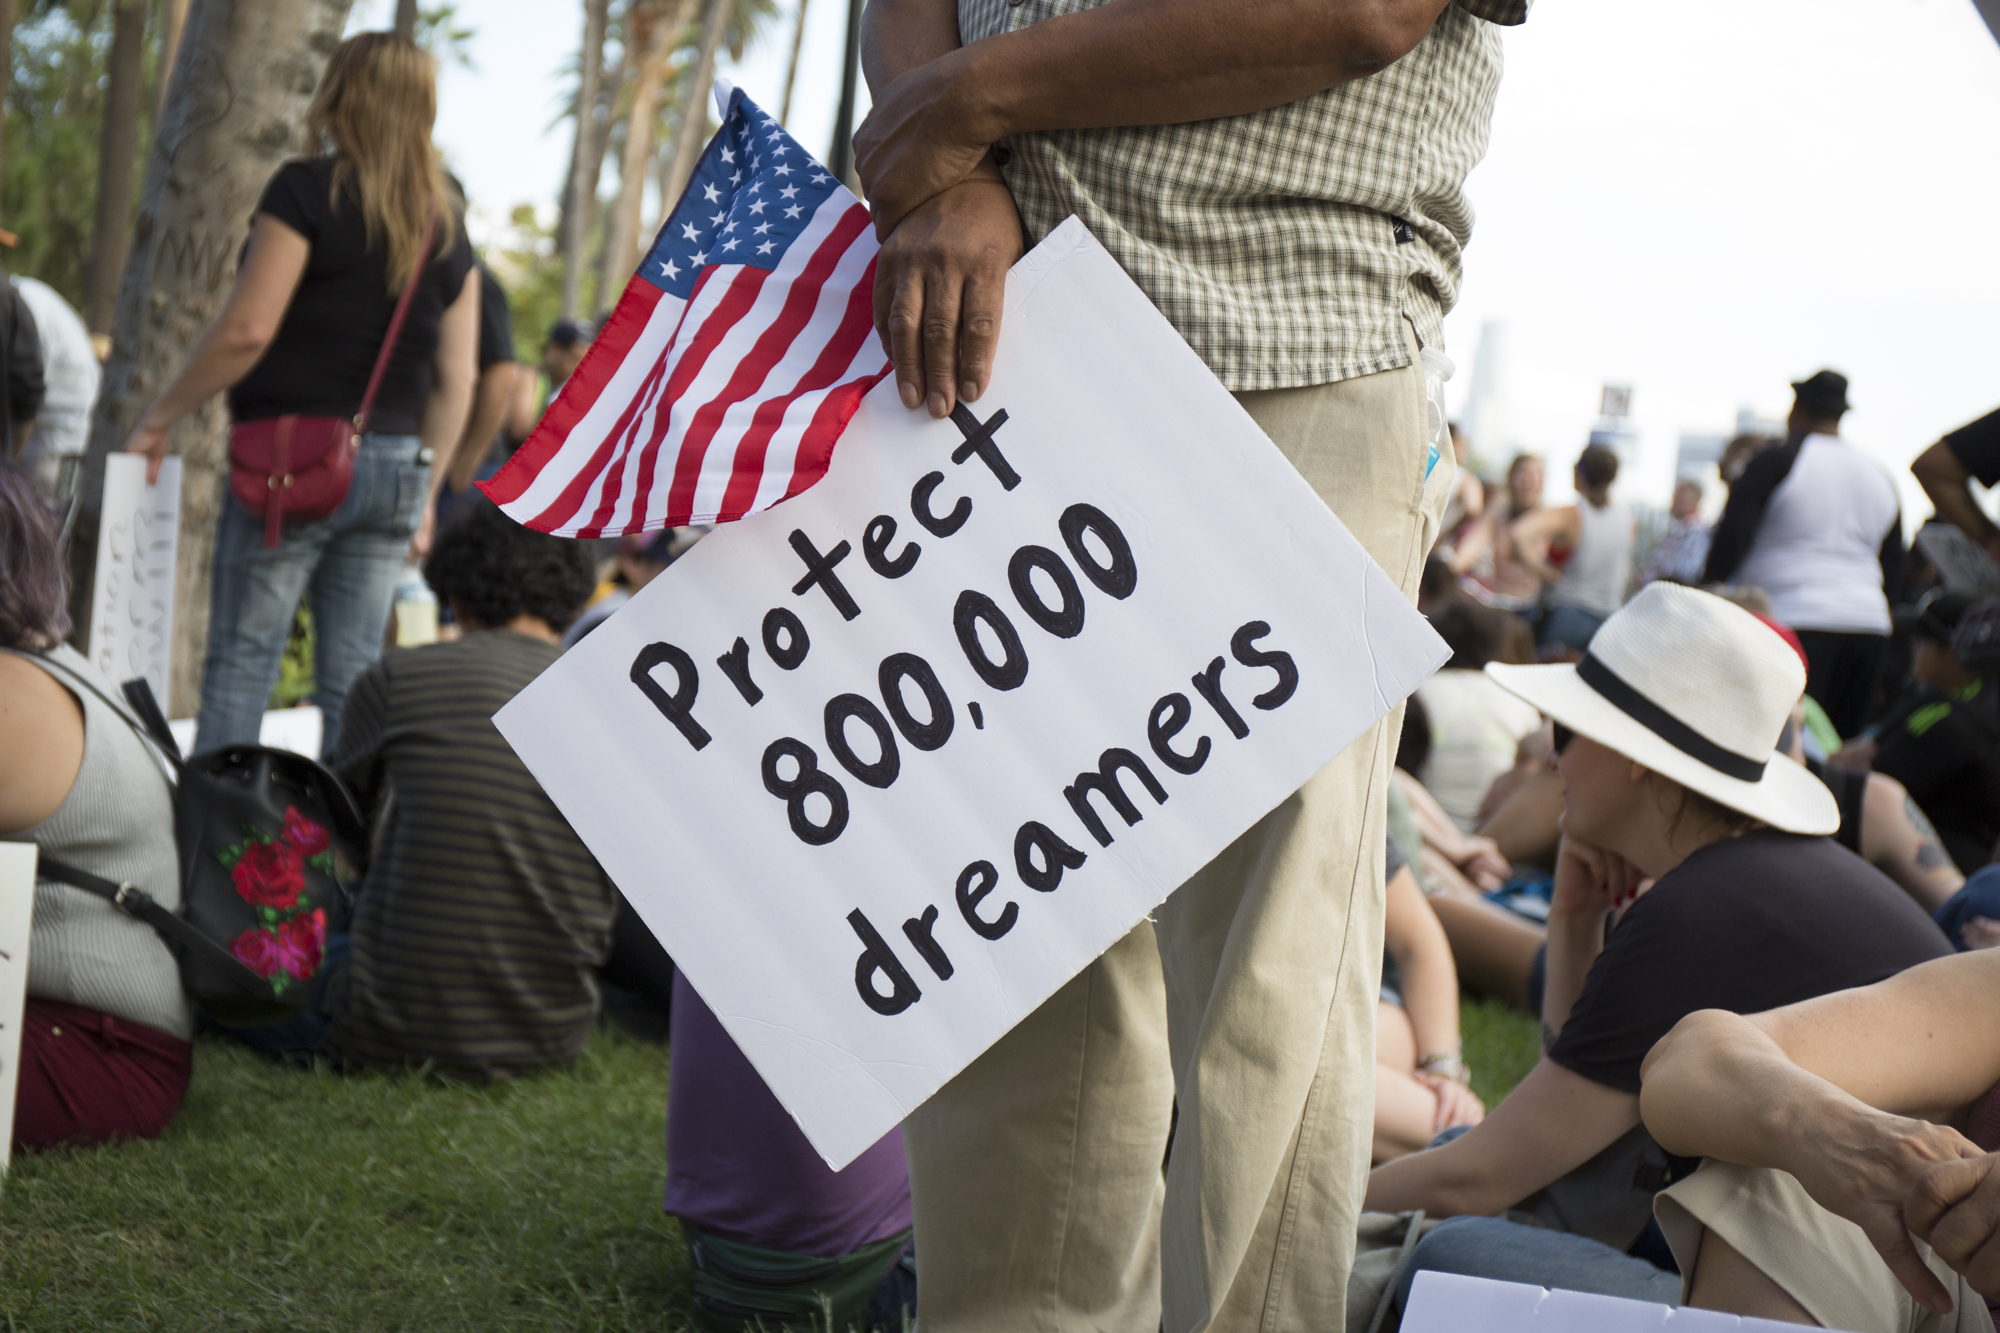 Hundreds march to protect DACA